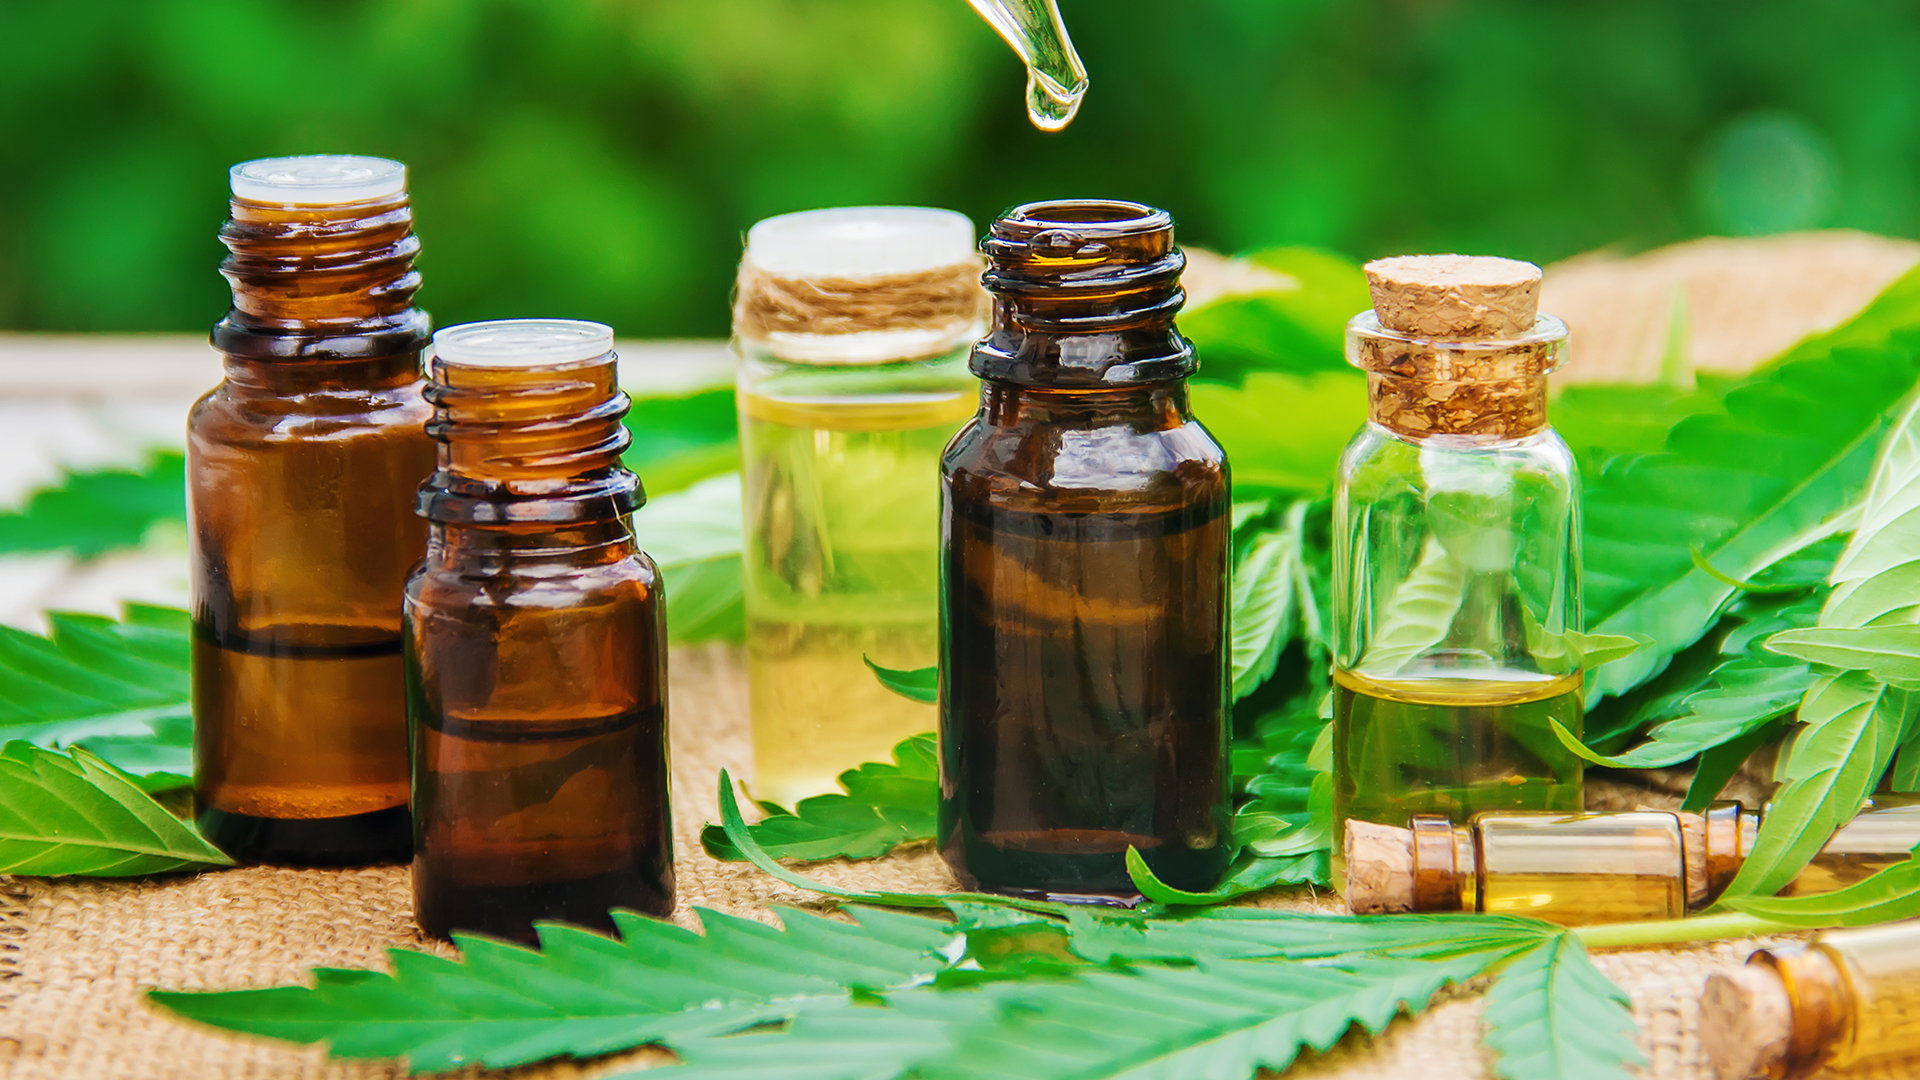 How To Make Cbd Oil From Hemp With No Thc